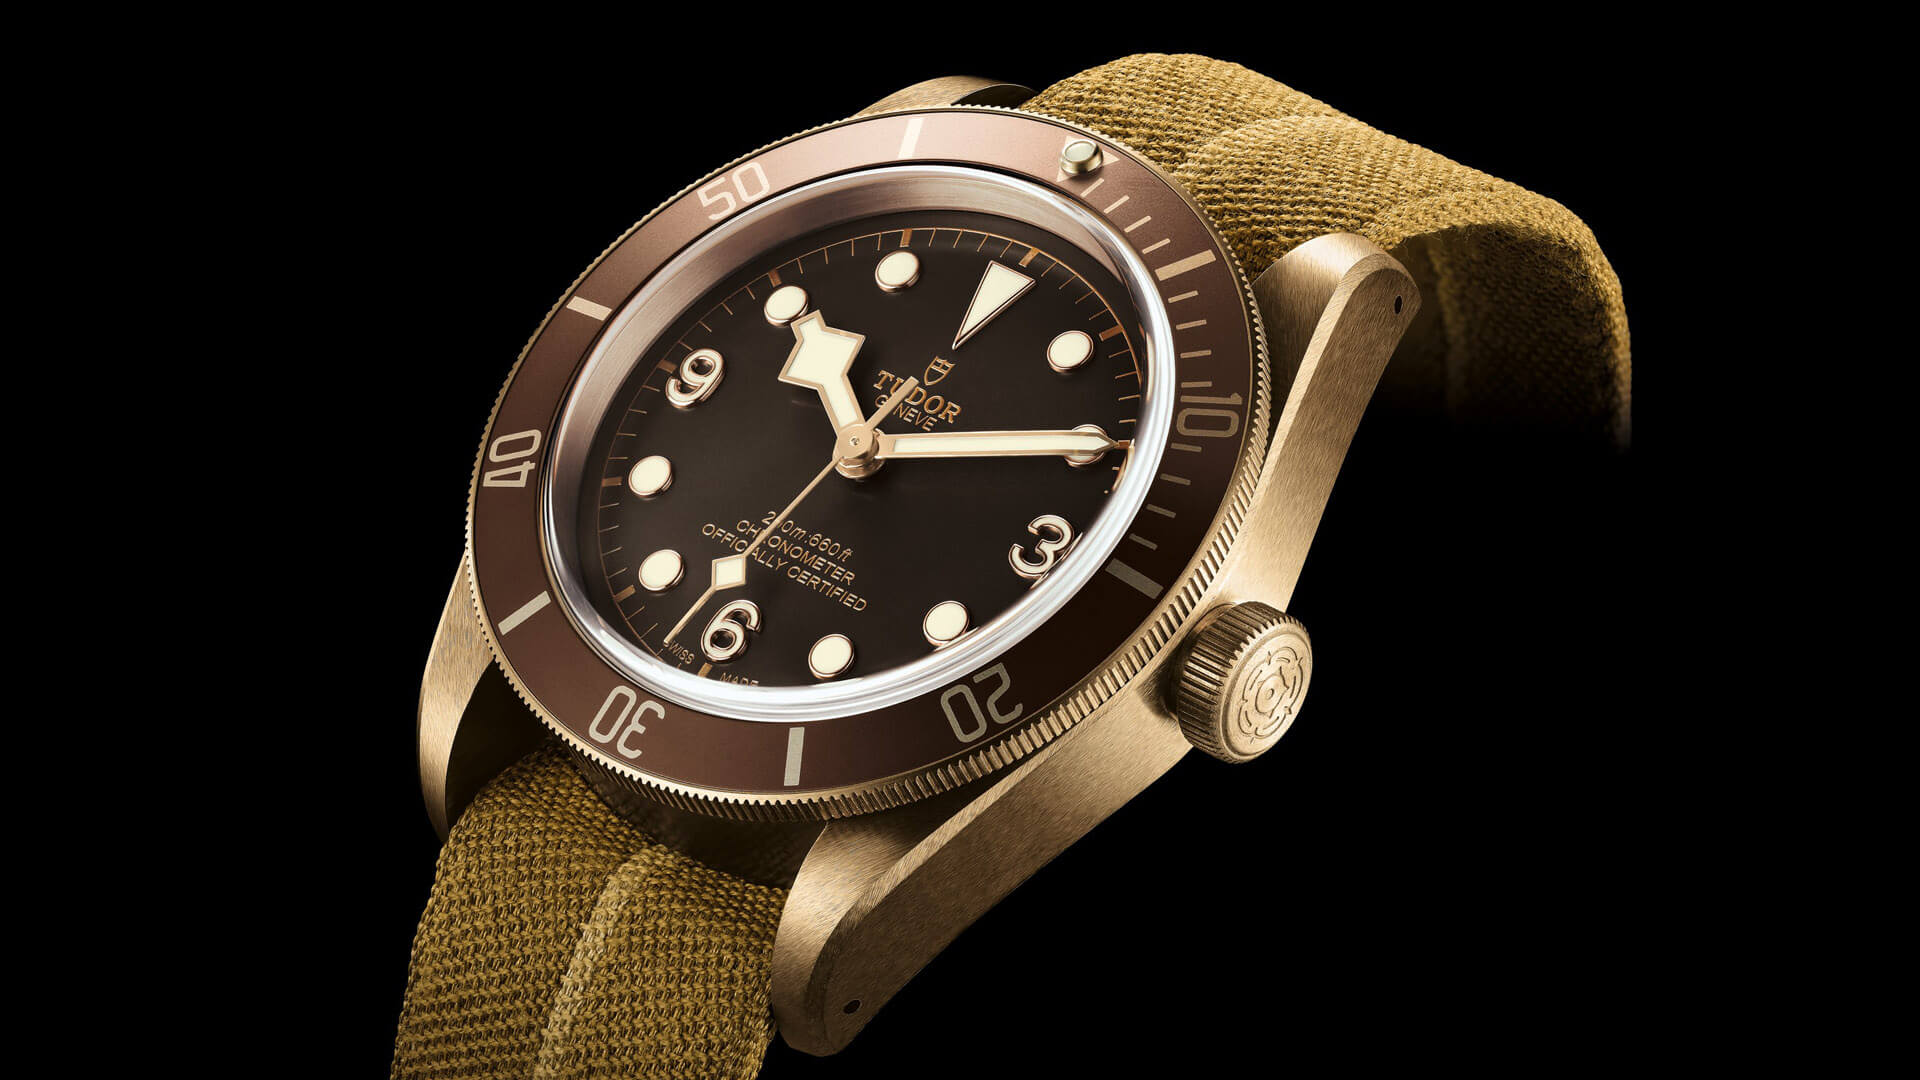 Tudor heritage black bay bronze ref 79230bm escapement - Tudor dive watch price ...